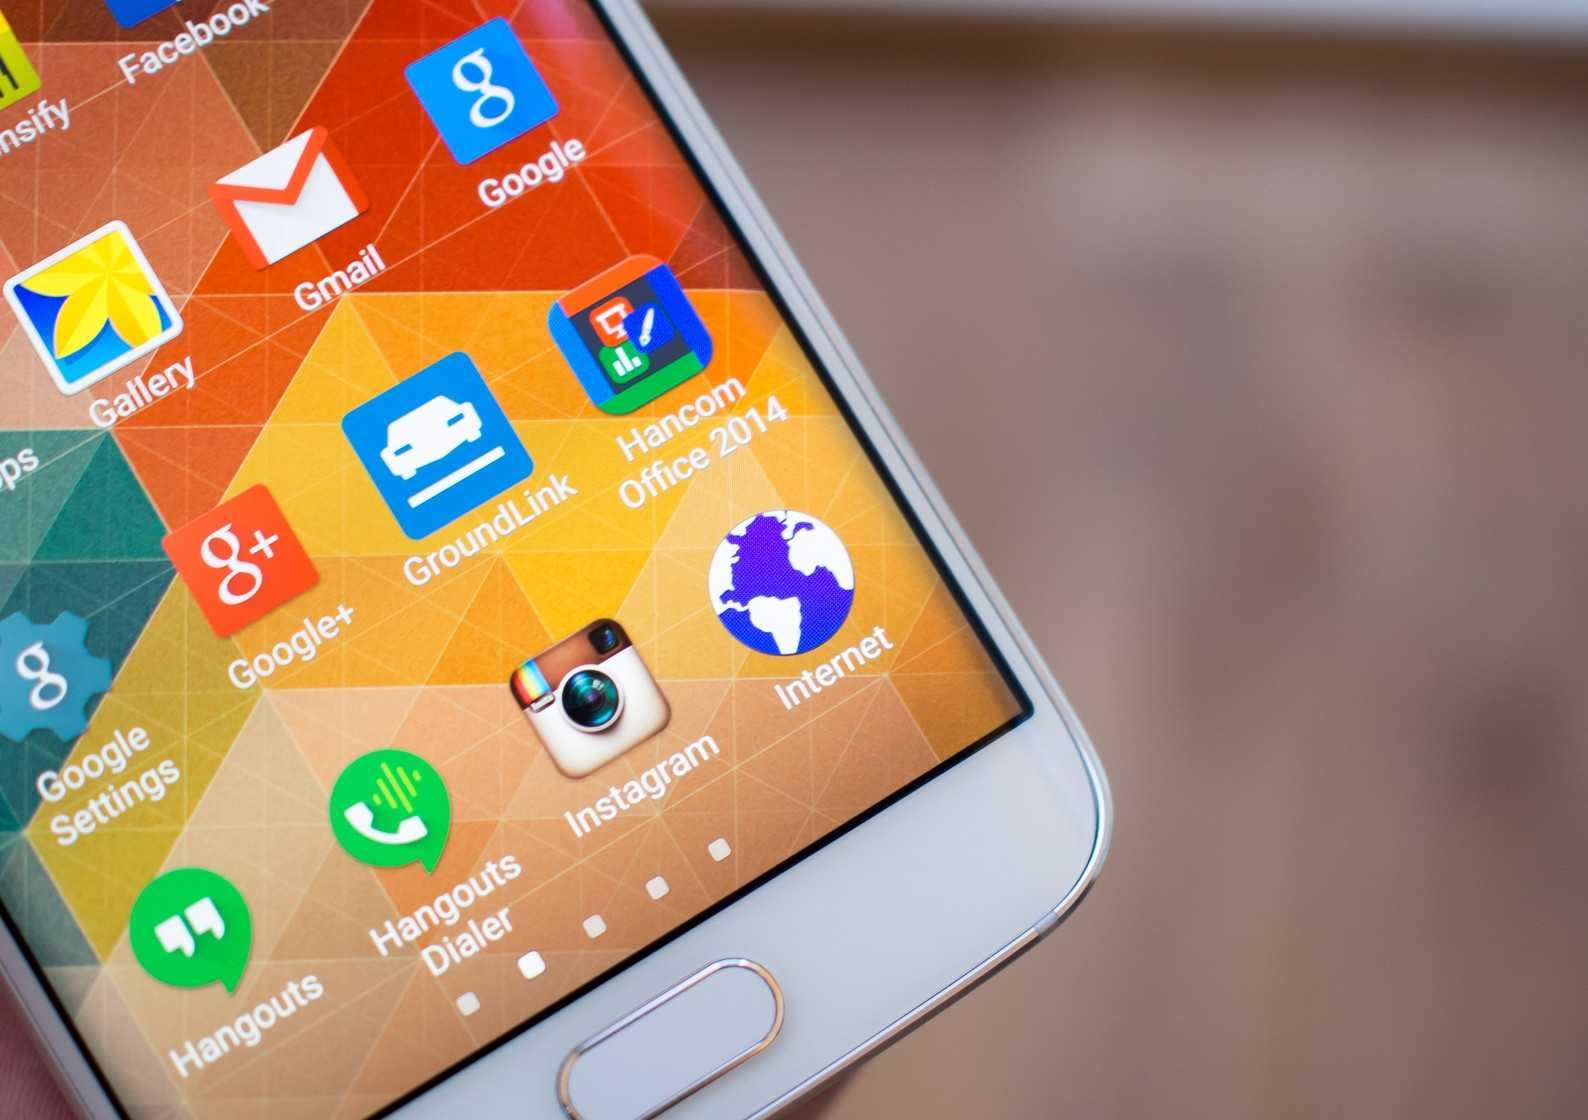 Samsung Internet browser is now available on Google Play Store